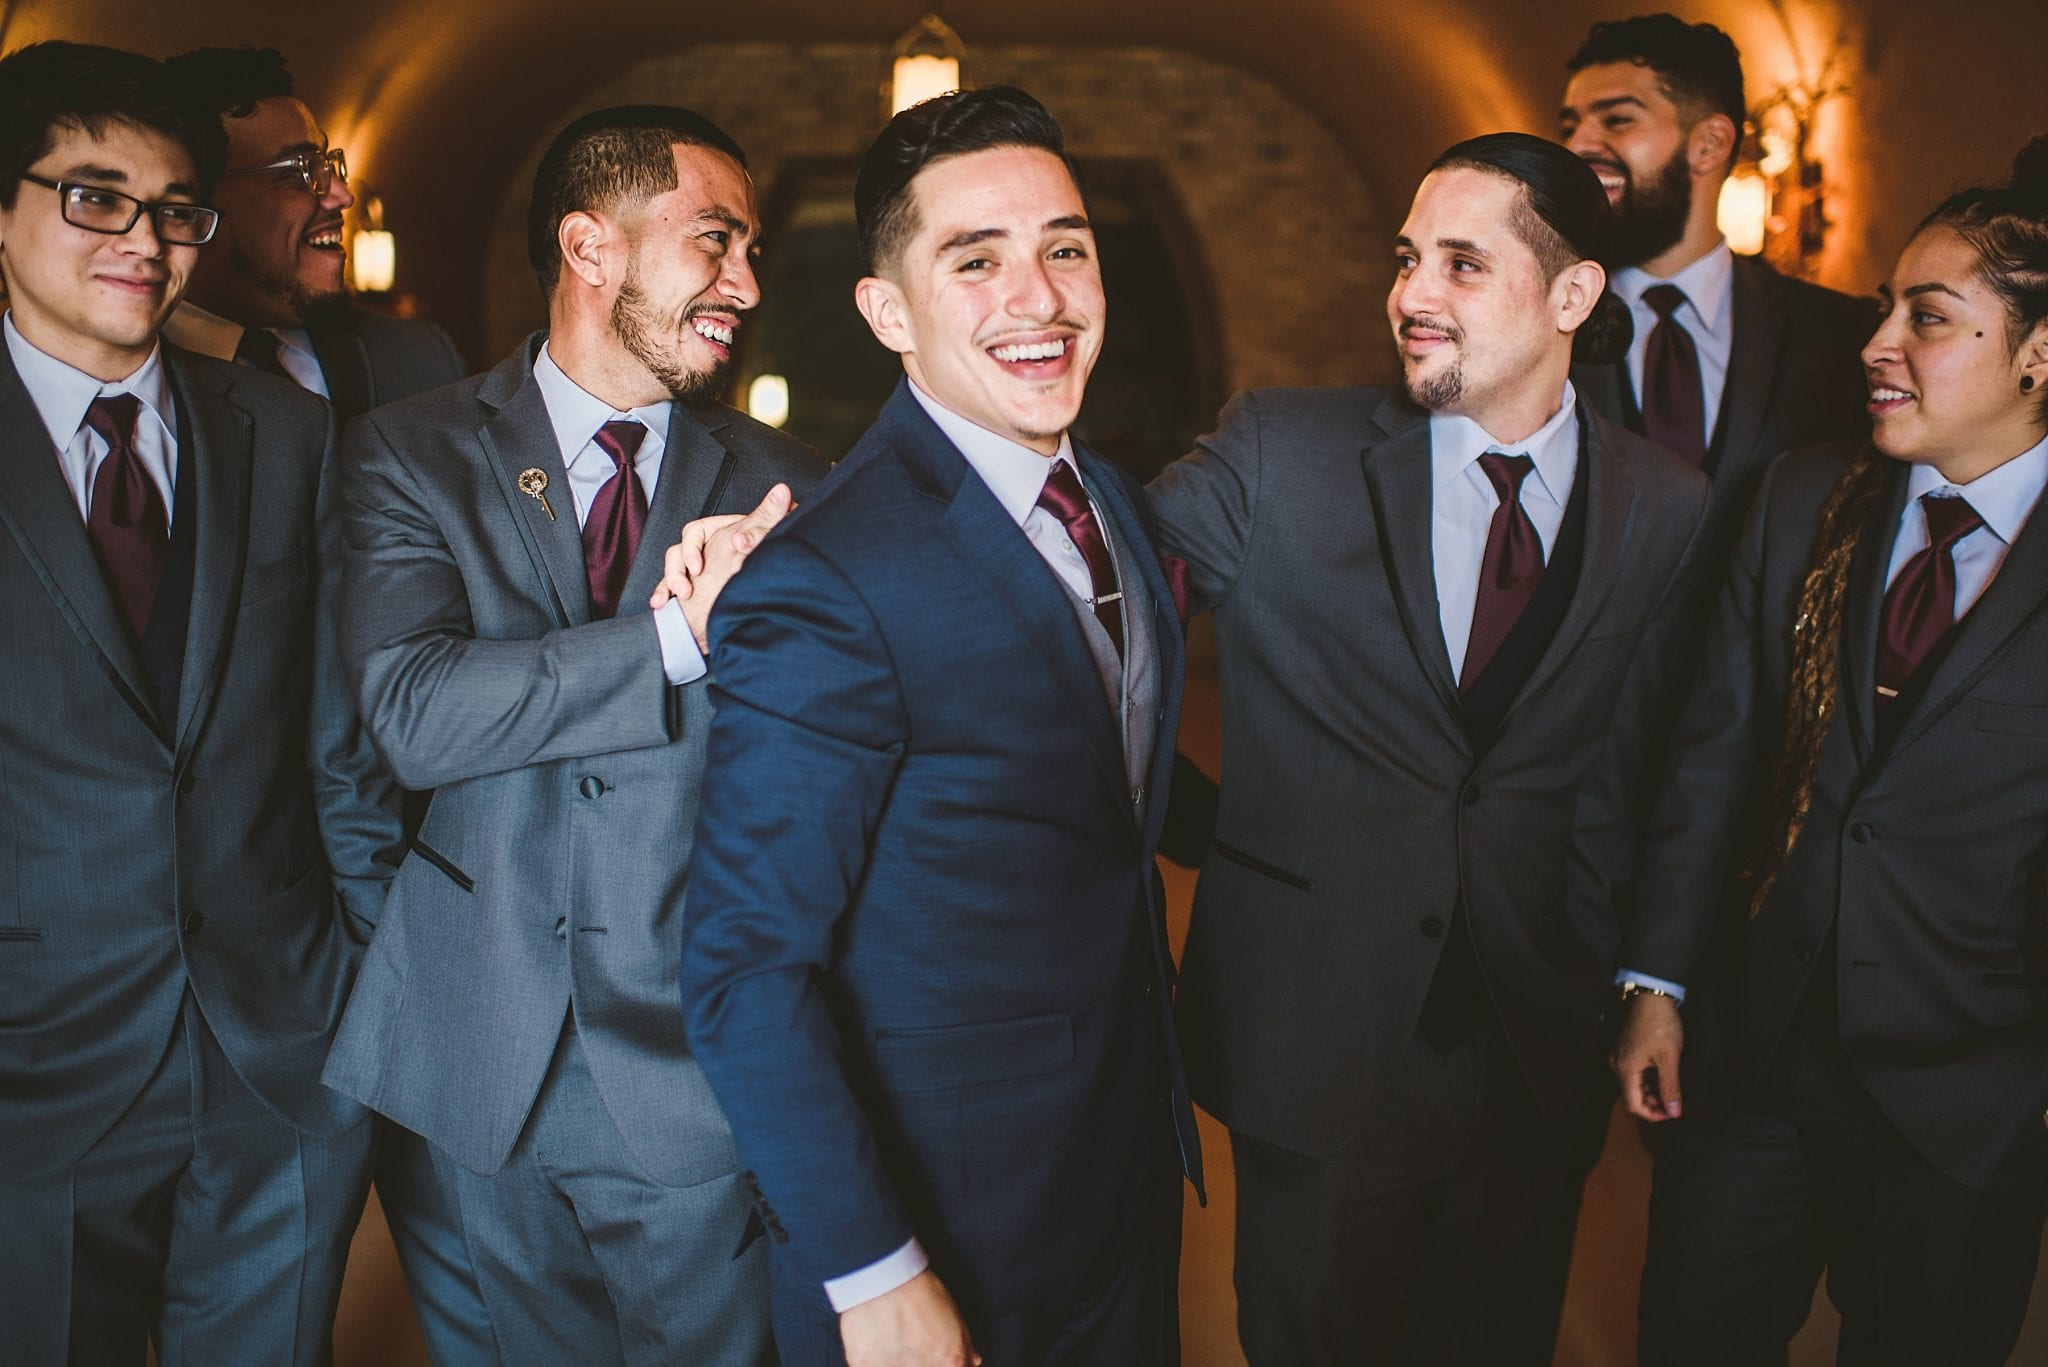 Groom and Groomsmen at winery wedding